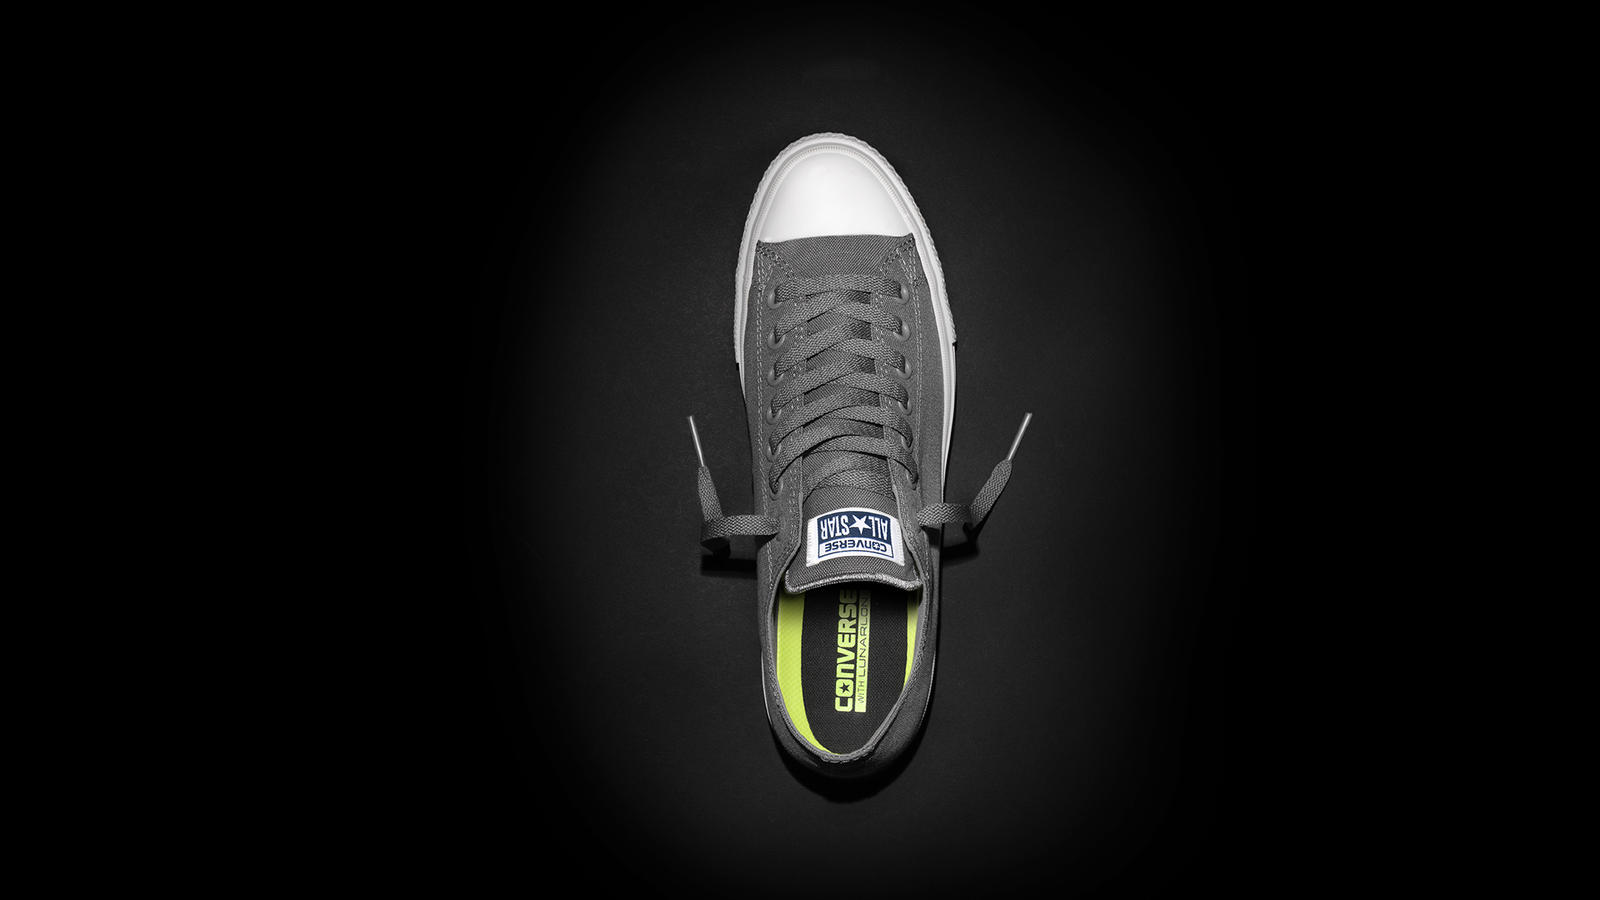 af858bbc571c CONVERSE CHUCK TAYLOR ALL STAR II UNVEILS NEW SEASONAL COLORS - Nike ...